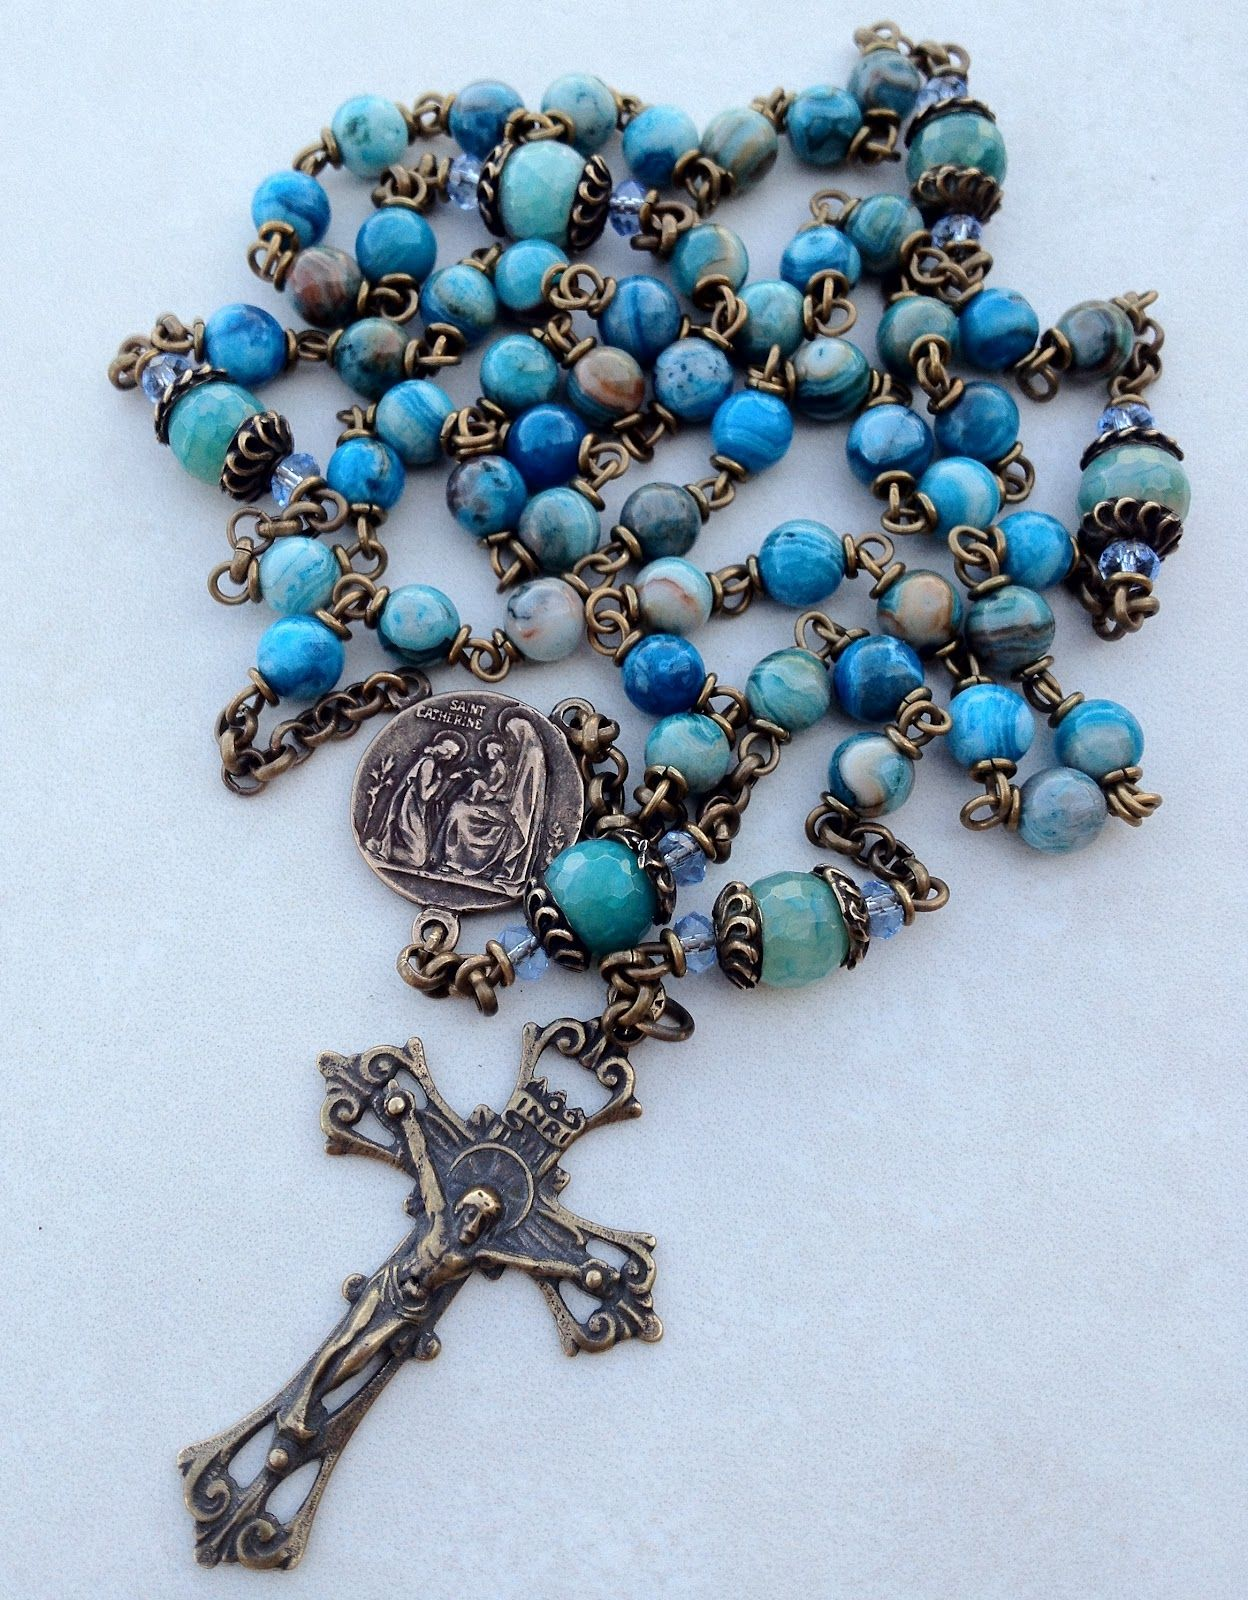 Click on any photo to see full size stella maris rosary for young